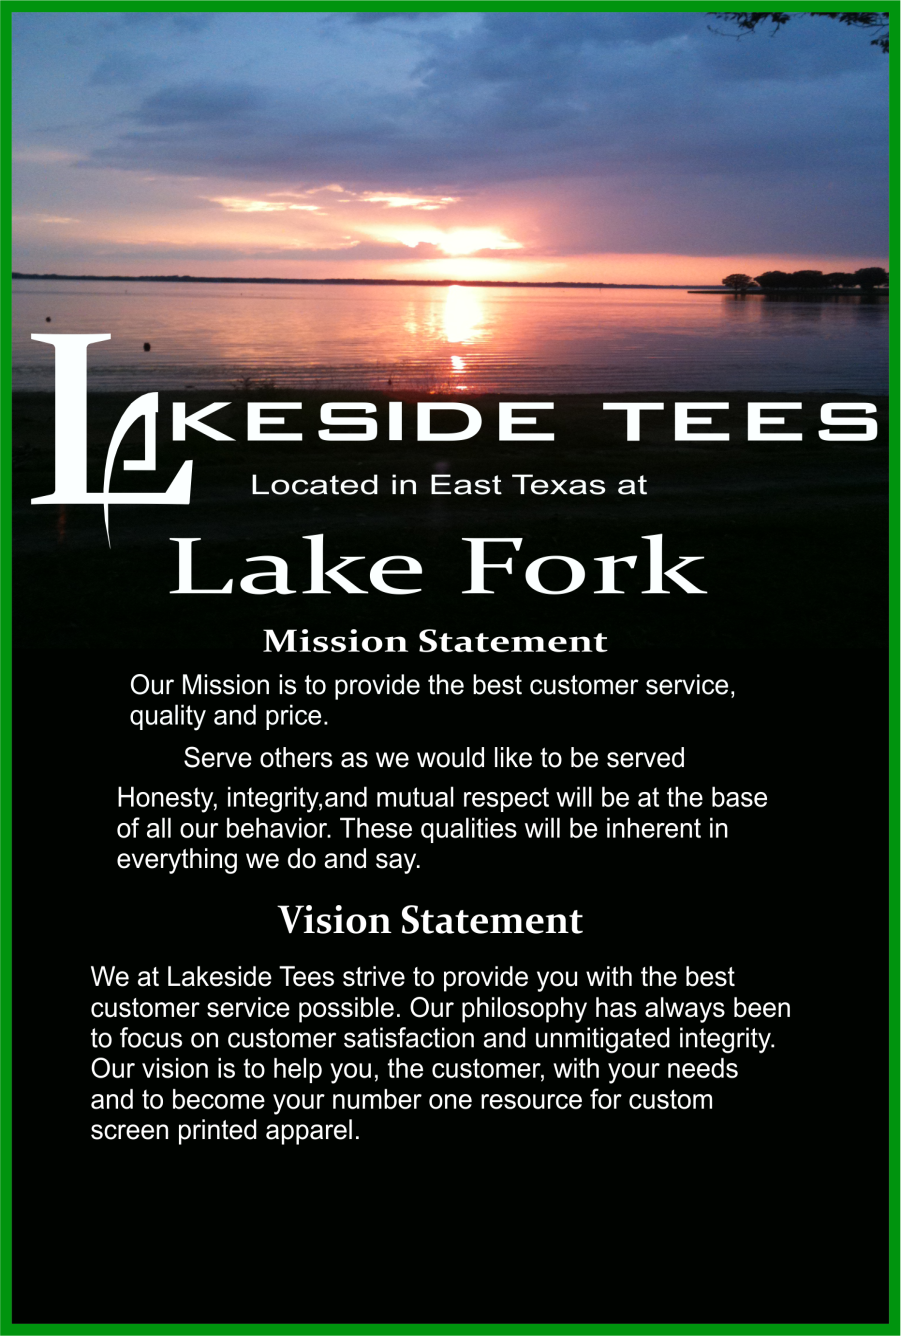 mission / vision statement